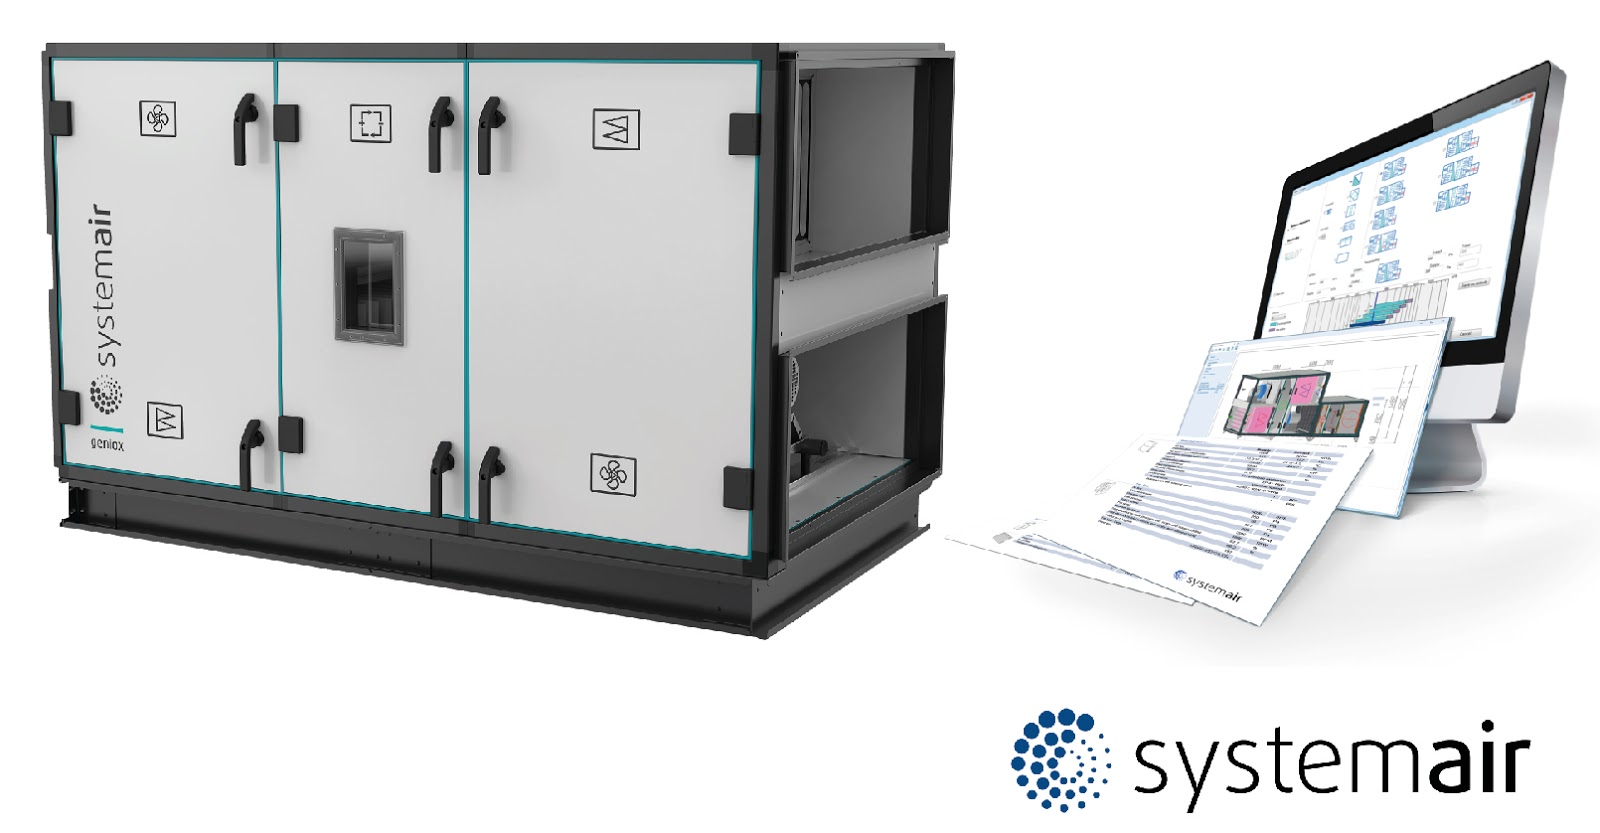 Systemair Launch new Geniox Air Handling System